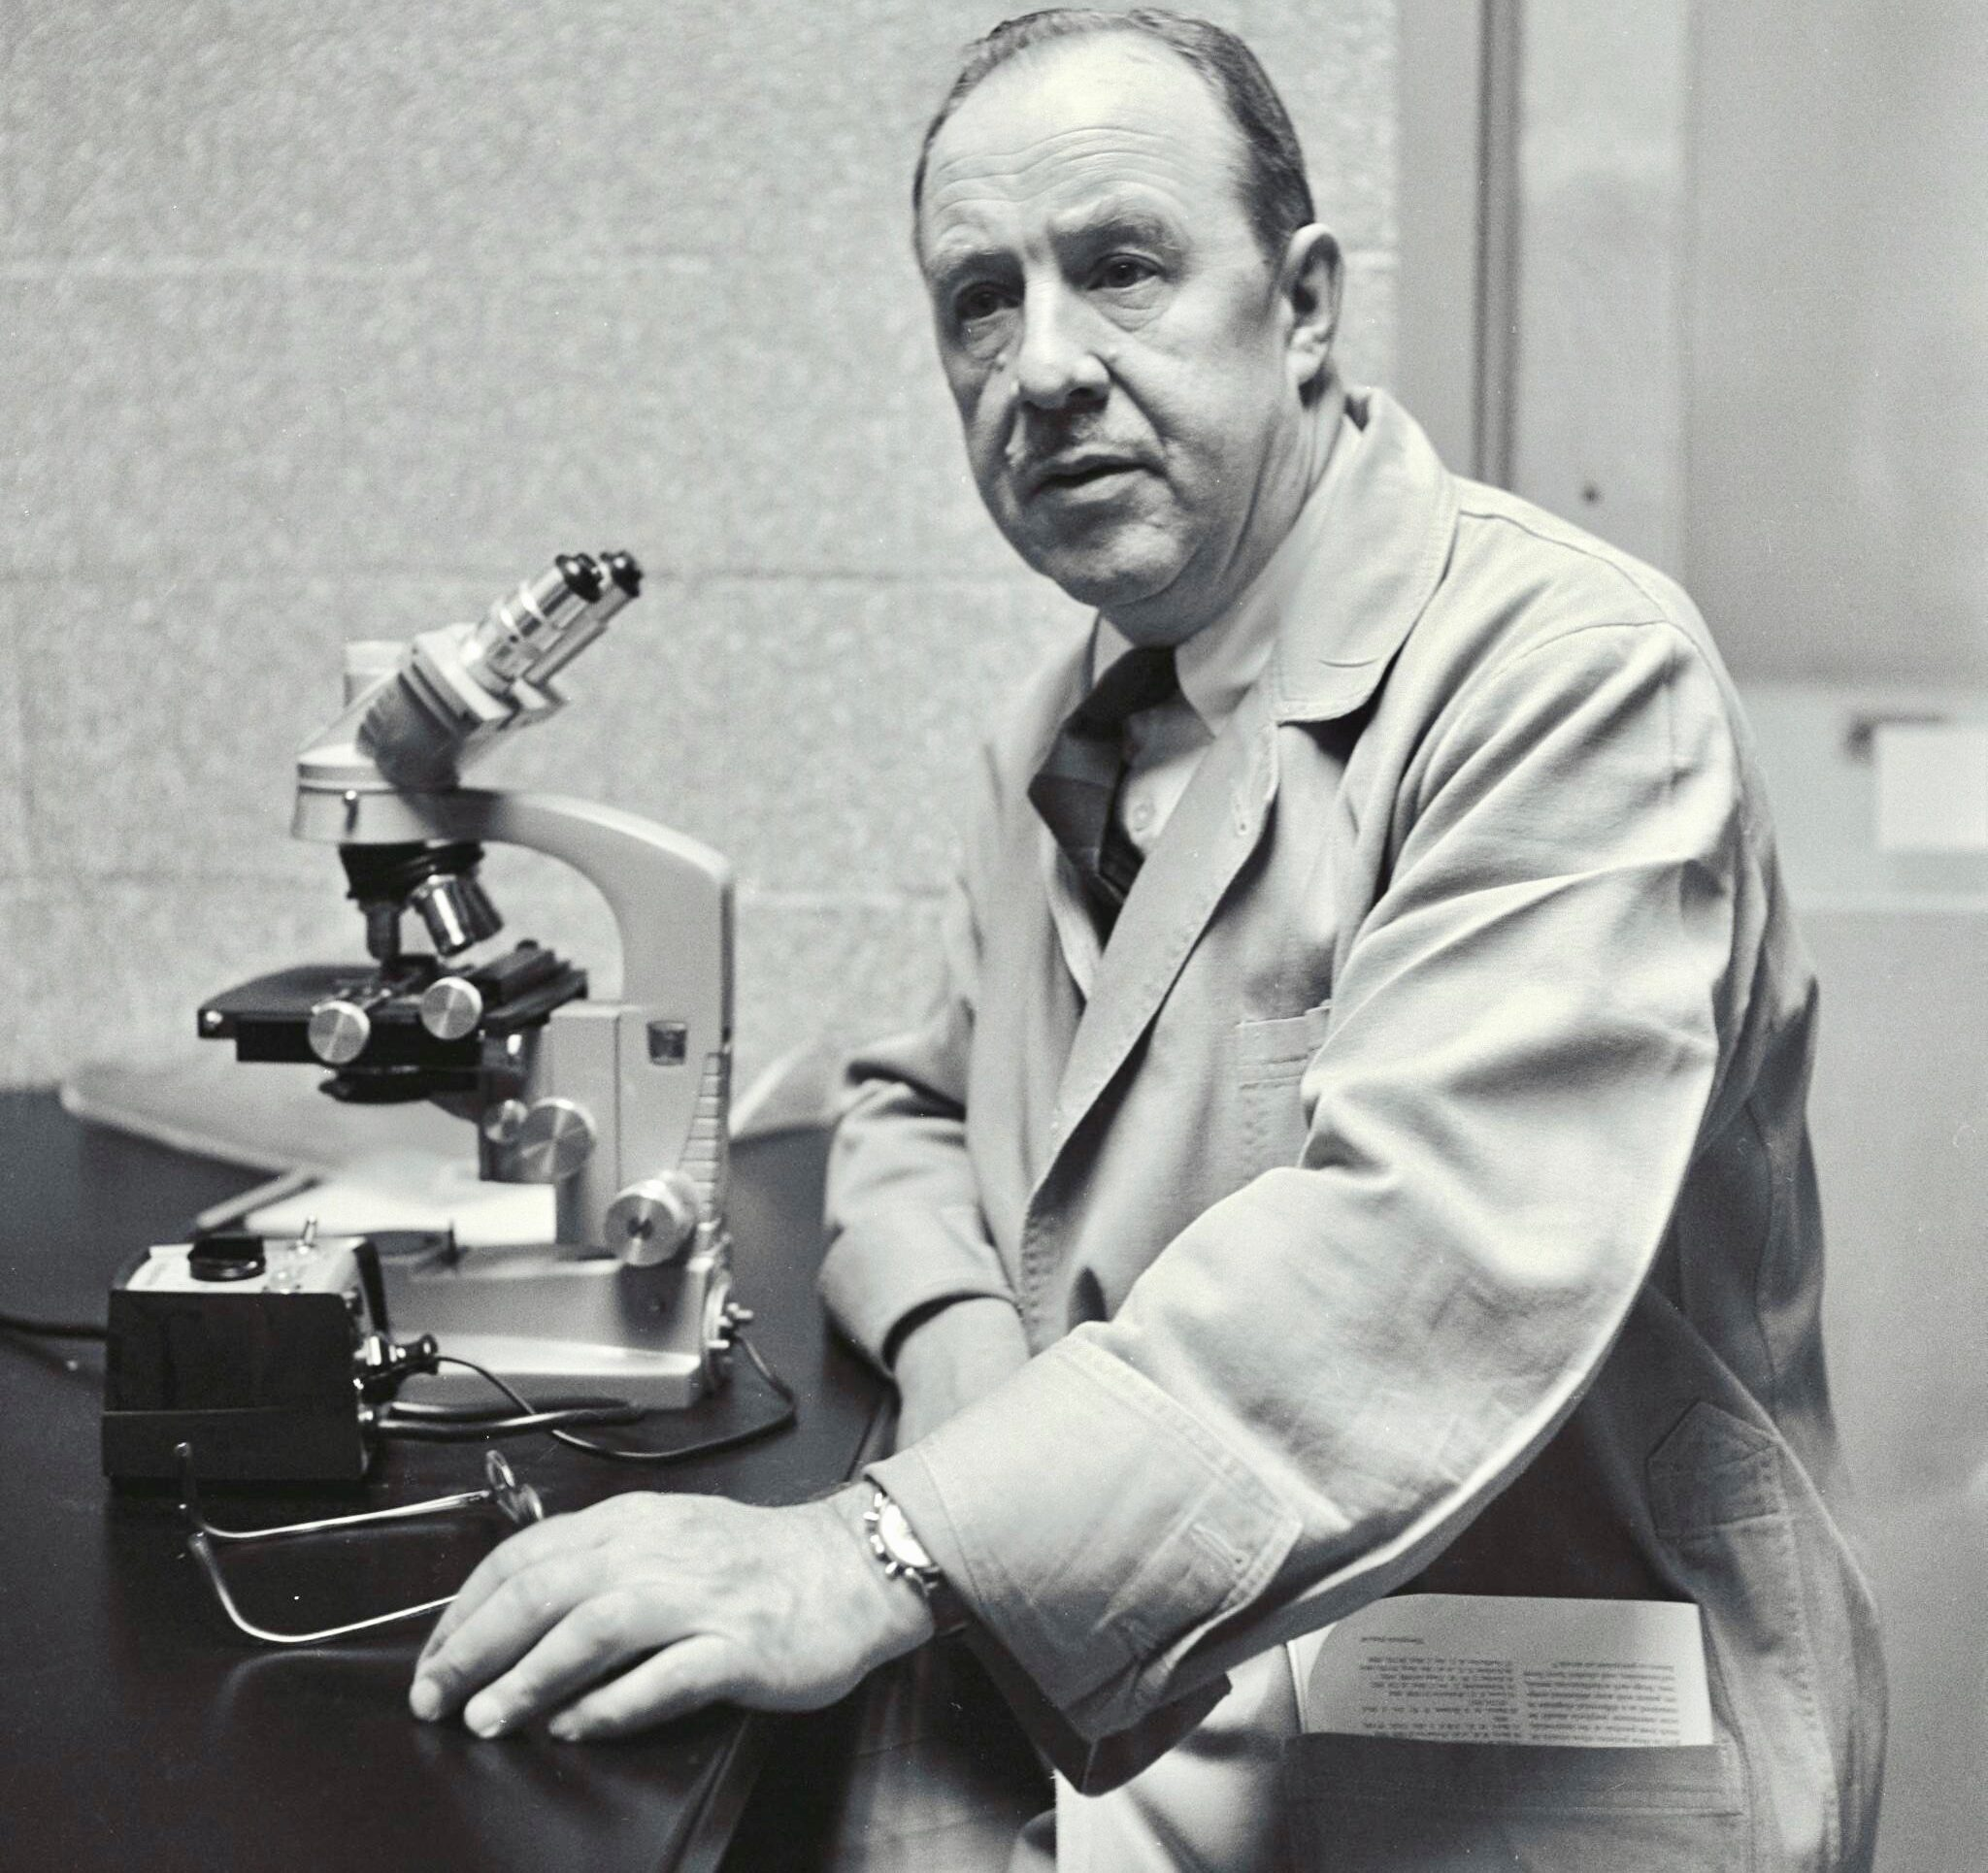 Francis gained his original expertise as a lab researcher, but as an epidemiologist, he turned to the compiling of data.